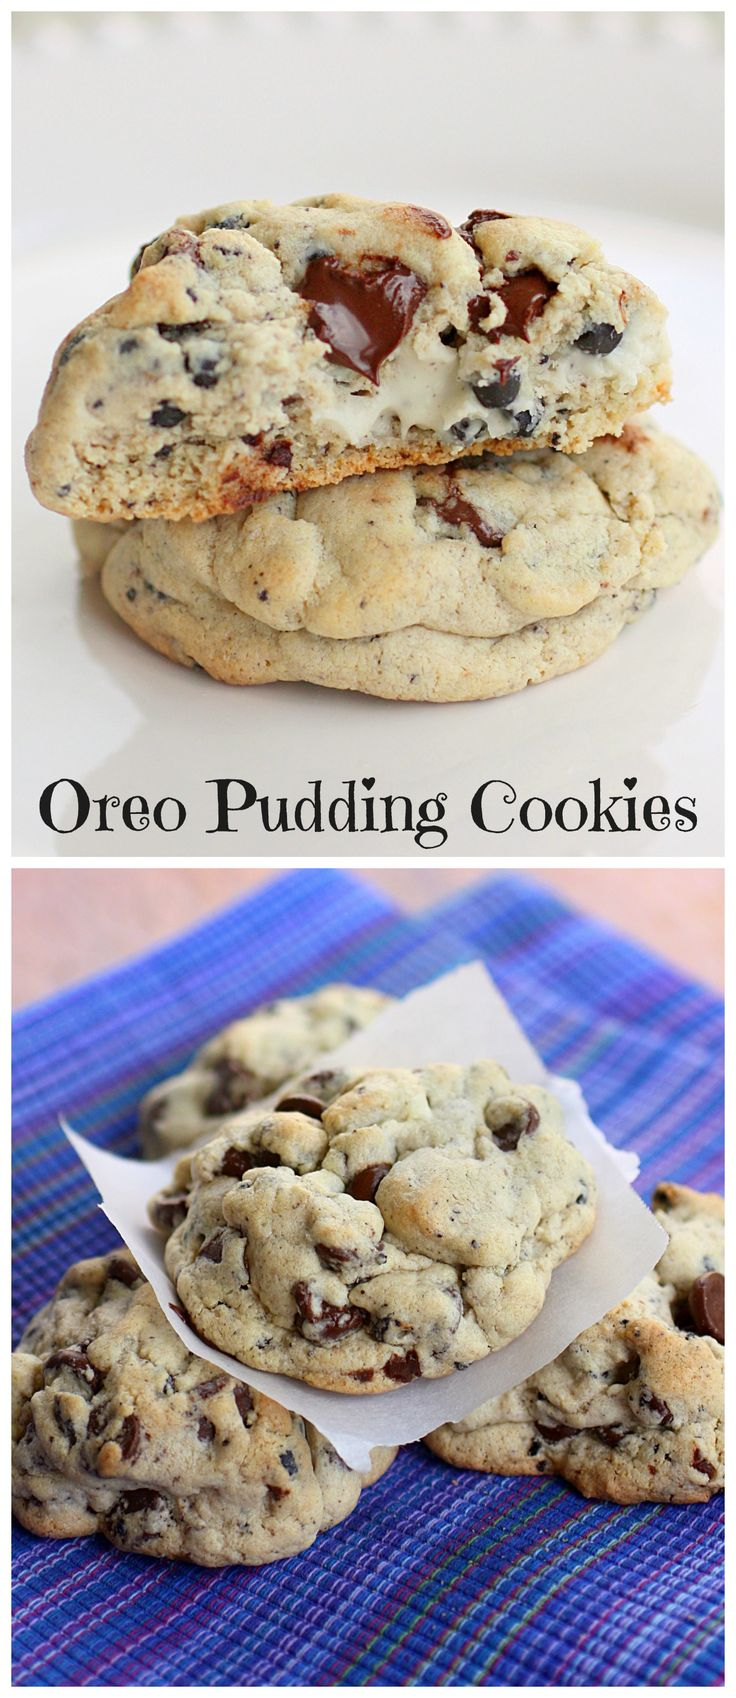 Oreo Pudding Cookies - soft and full of Oreo flavor.